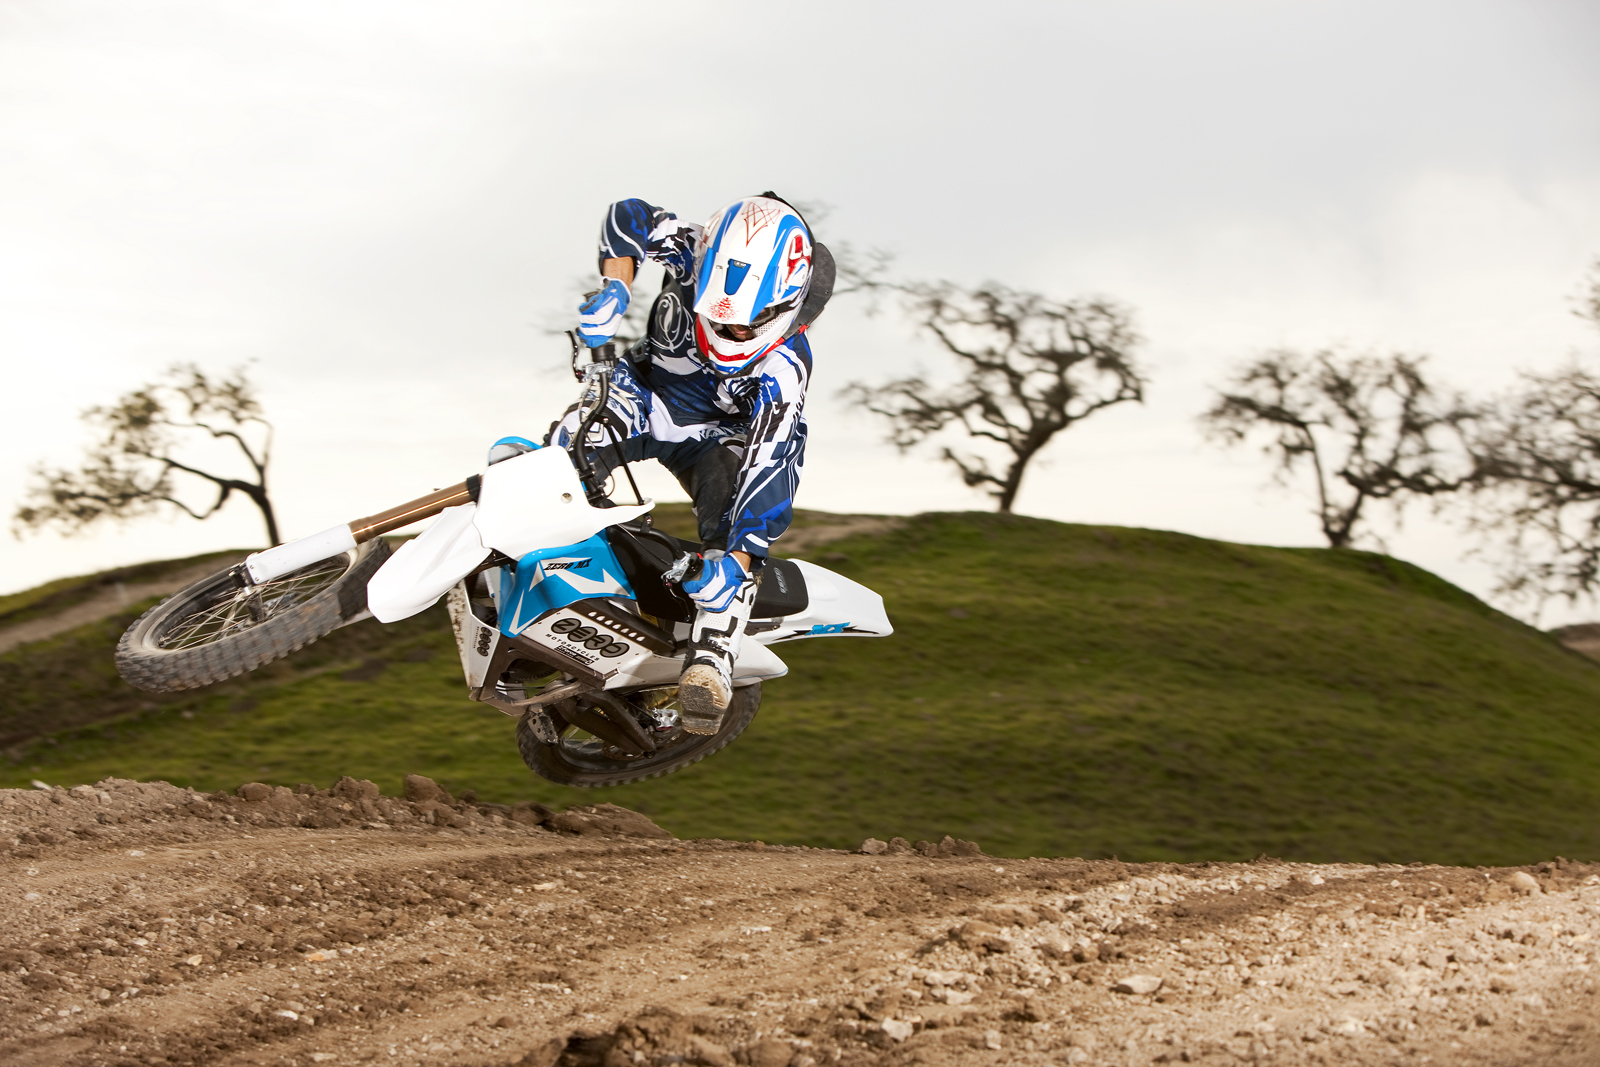 2010 Zero MX Electric Motorcycle: Zaca Station - Blue Scrub Lean Right